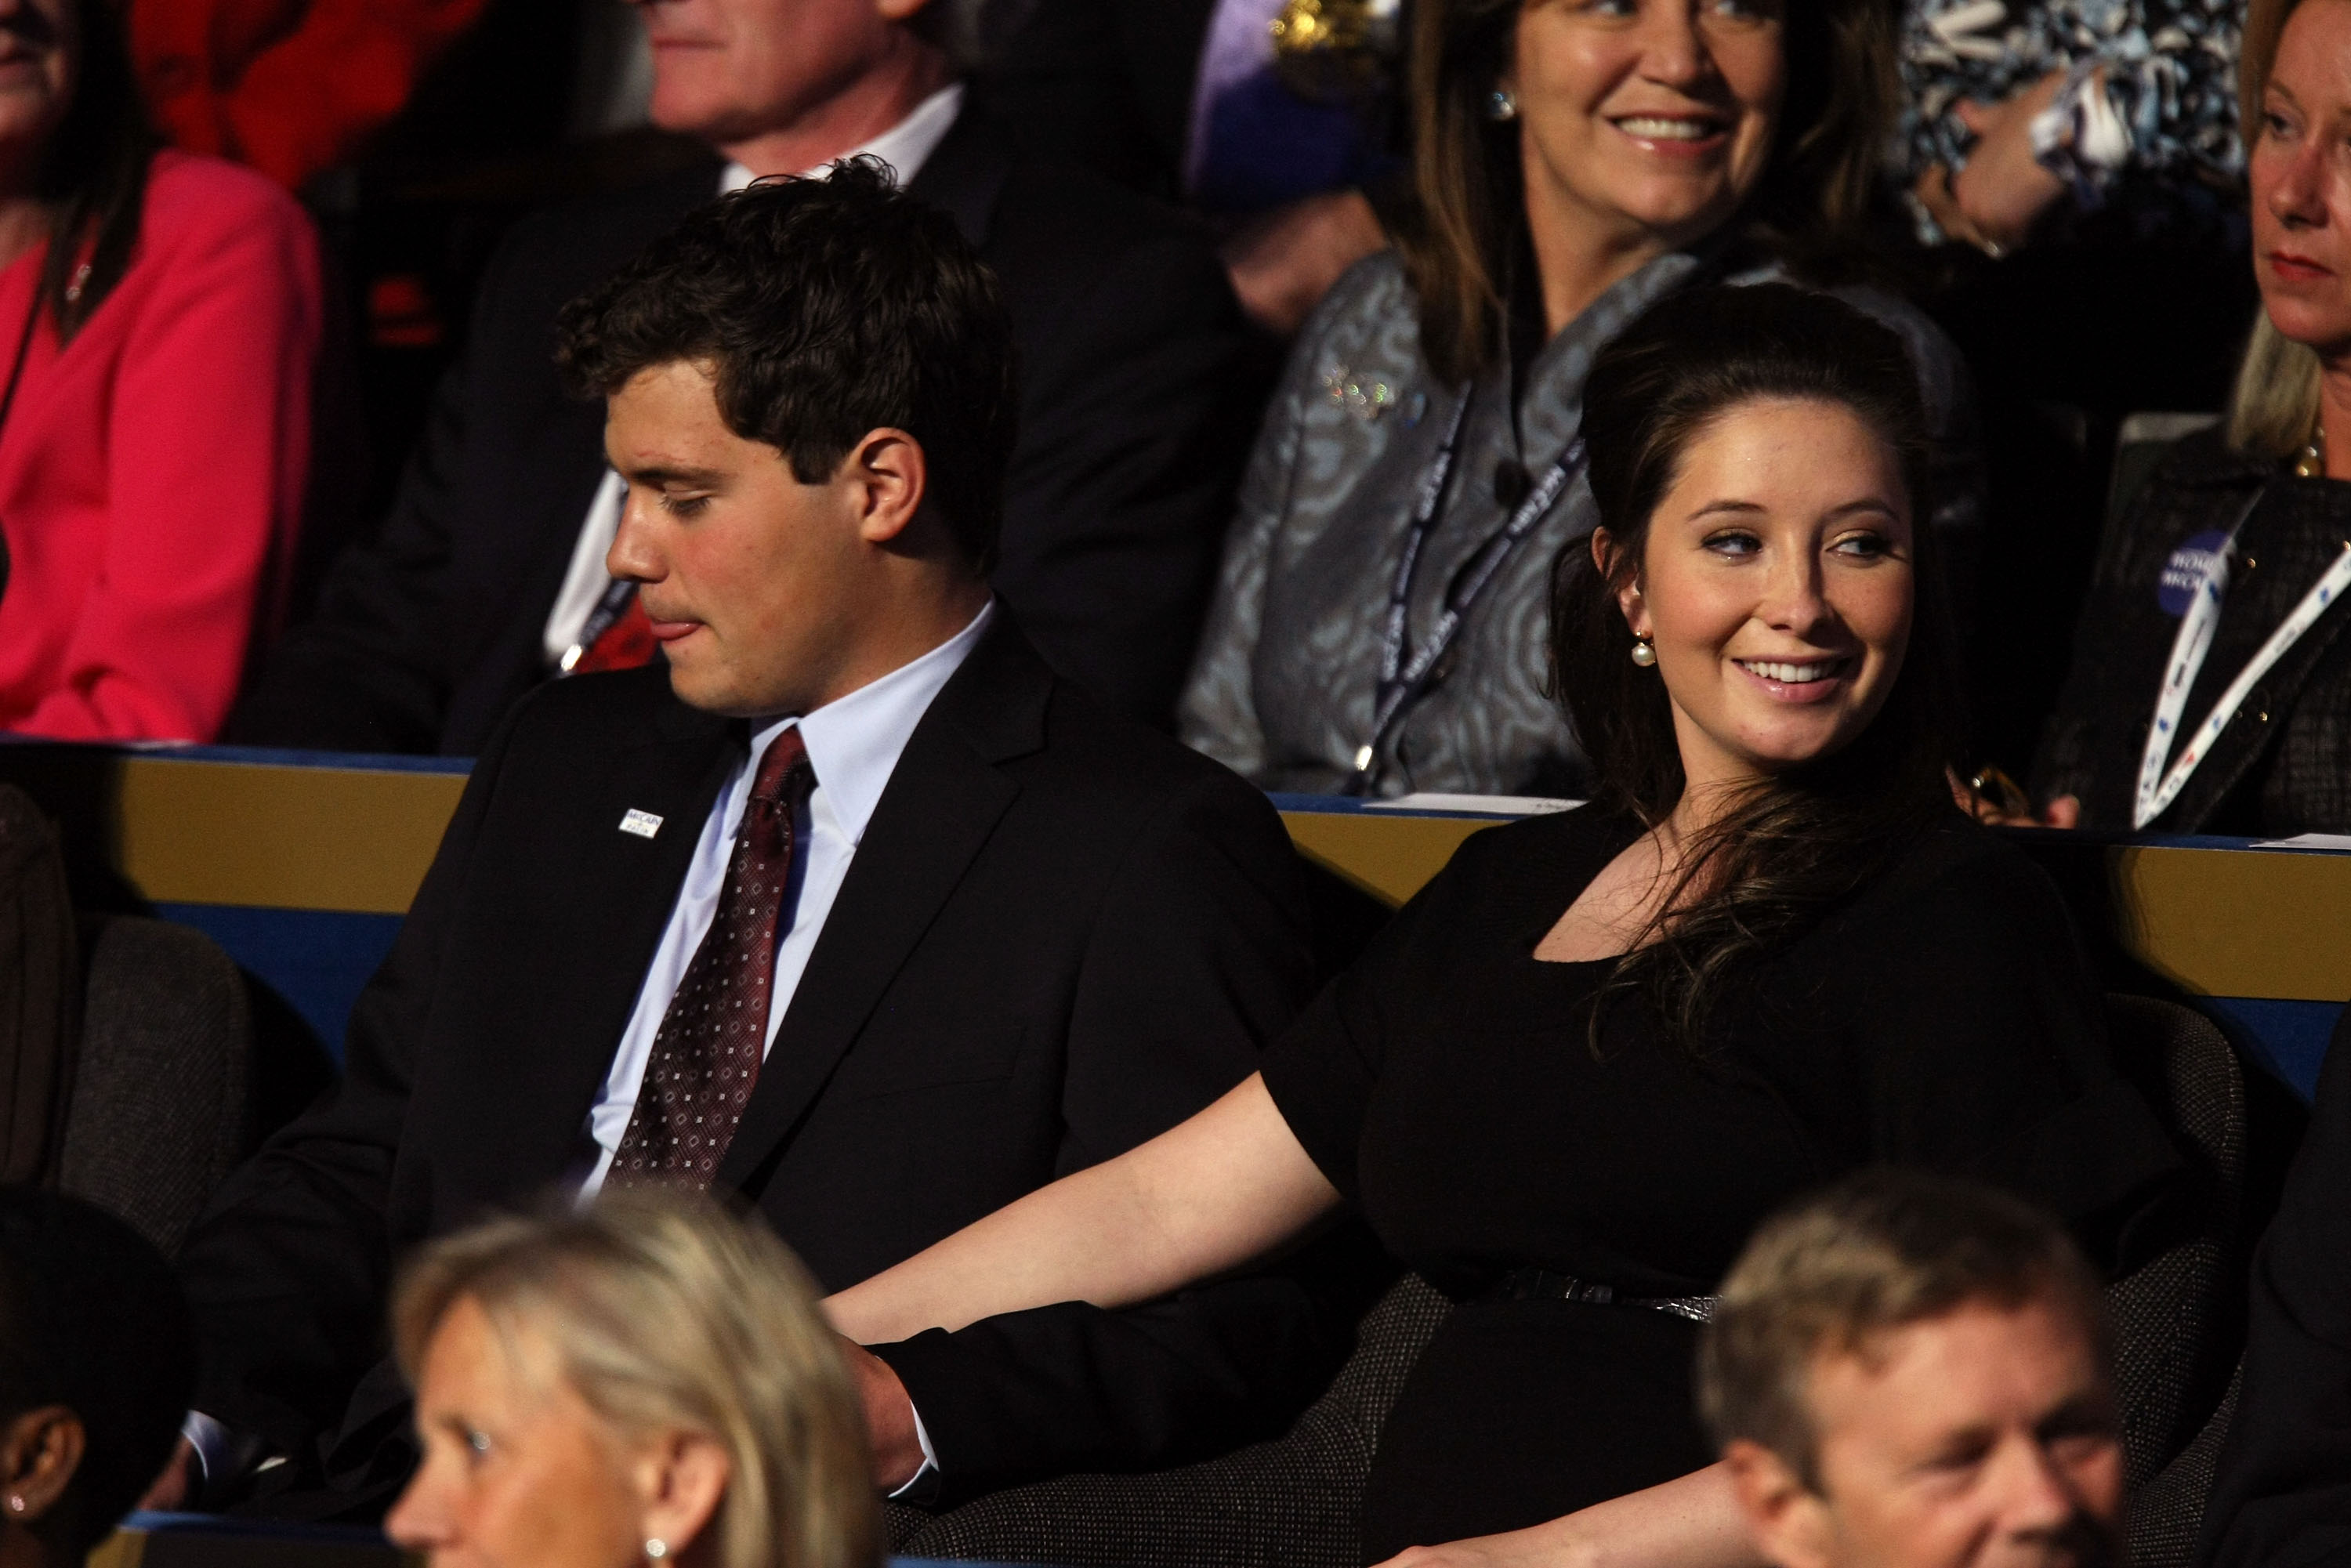 Bristol Palin (R), daughter of Republican U.S vice-presidential nominee Alaska Gov. Sarah Palin, sits with her boyfriend Levi Johnston on day four of the Republican National Convention (RNC) at the Xcel Energy Center on September 4, 2008. (Justin Sullivan/Getty Images)